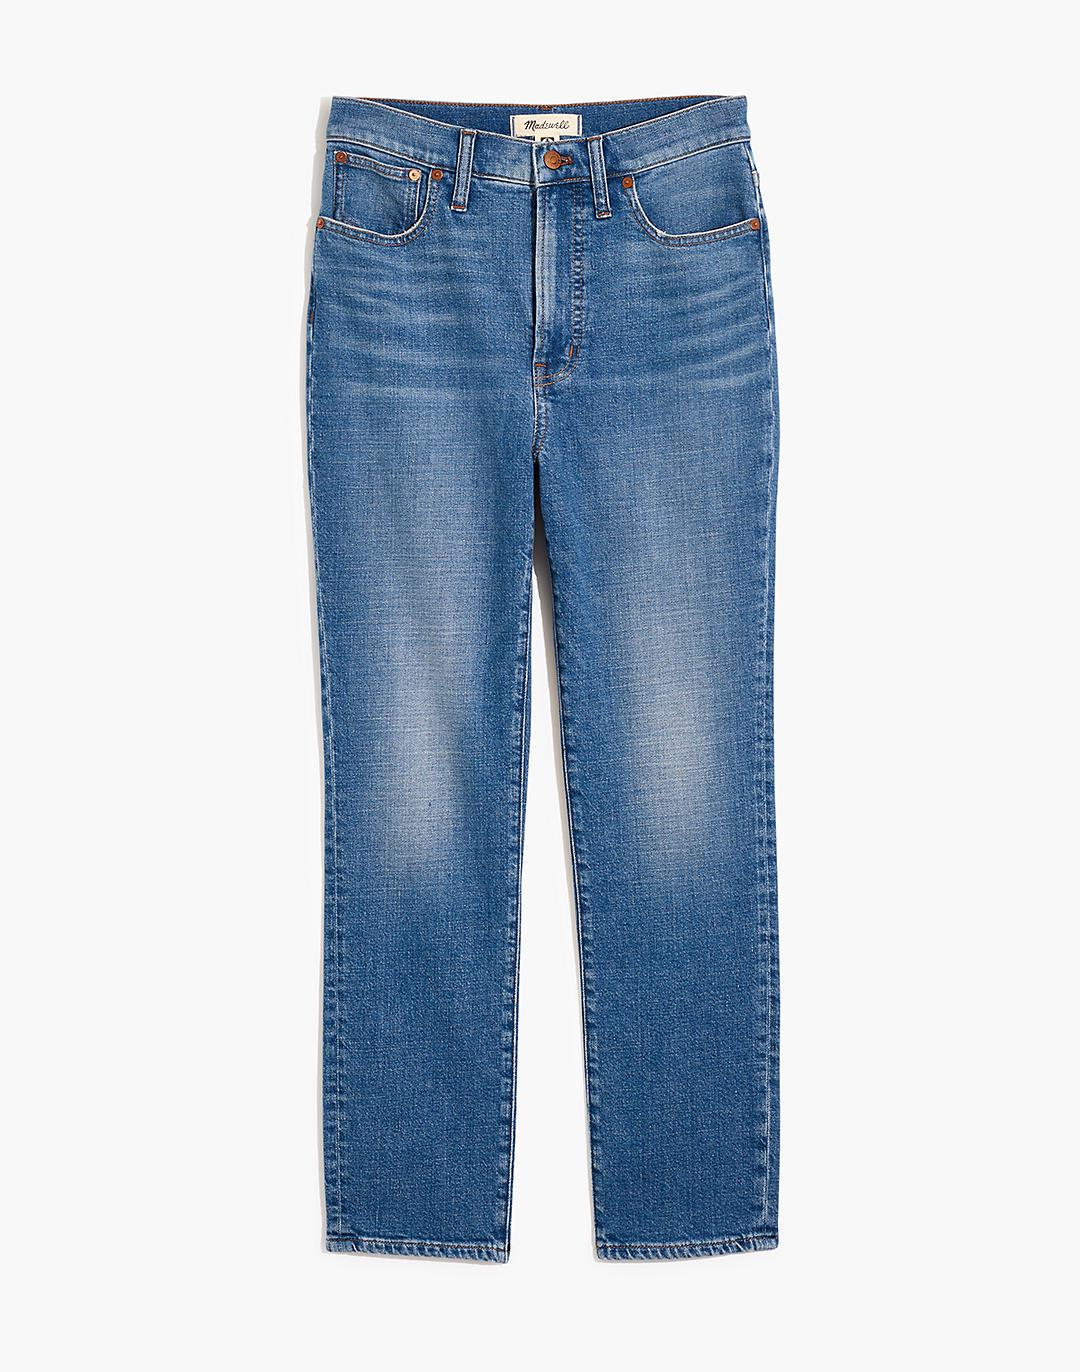 The Perfect Vintage Crop Jean in Sandford Wash: Summerweight Edition 4